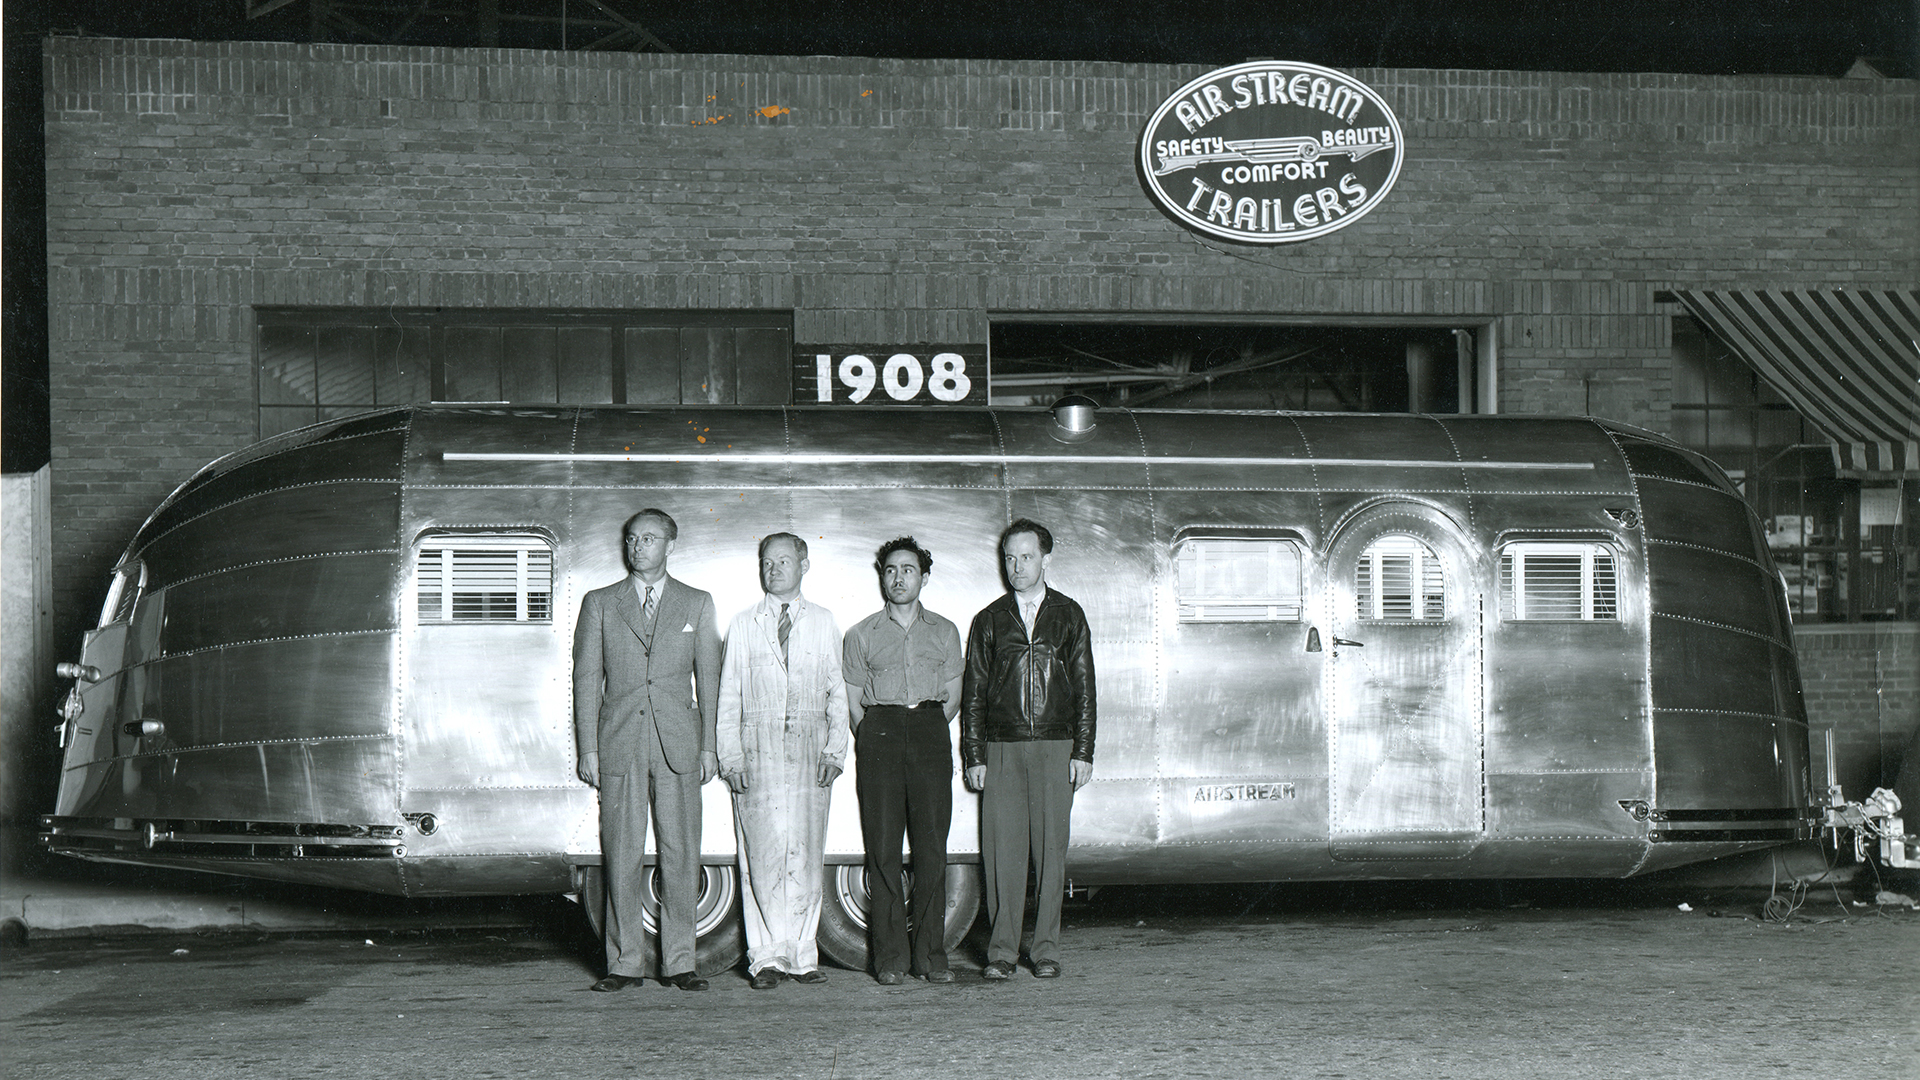 Wally-Unknown-Men-Clipper-Airstream-Factory-1908-Address